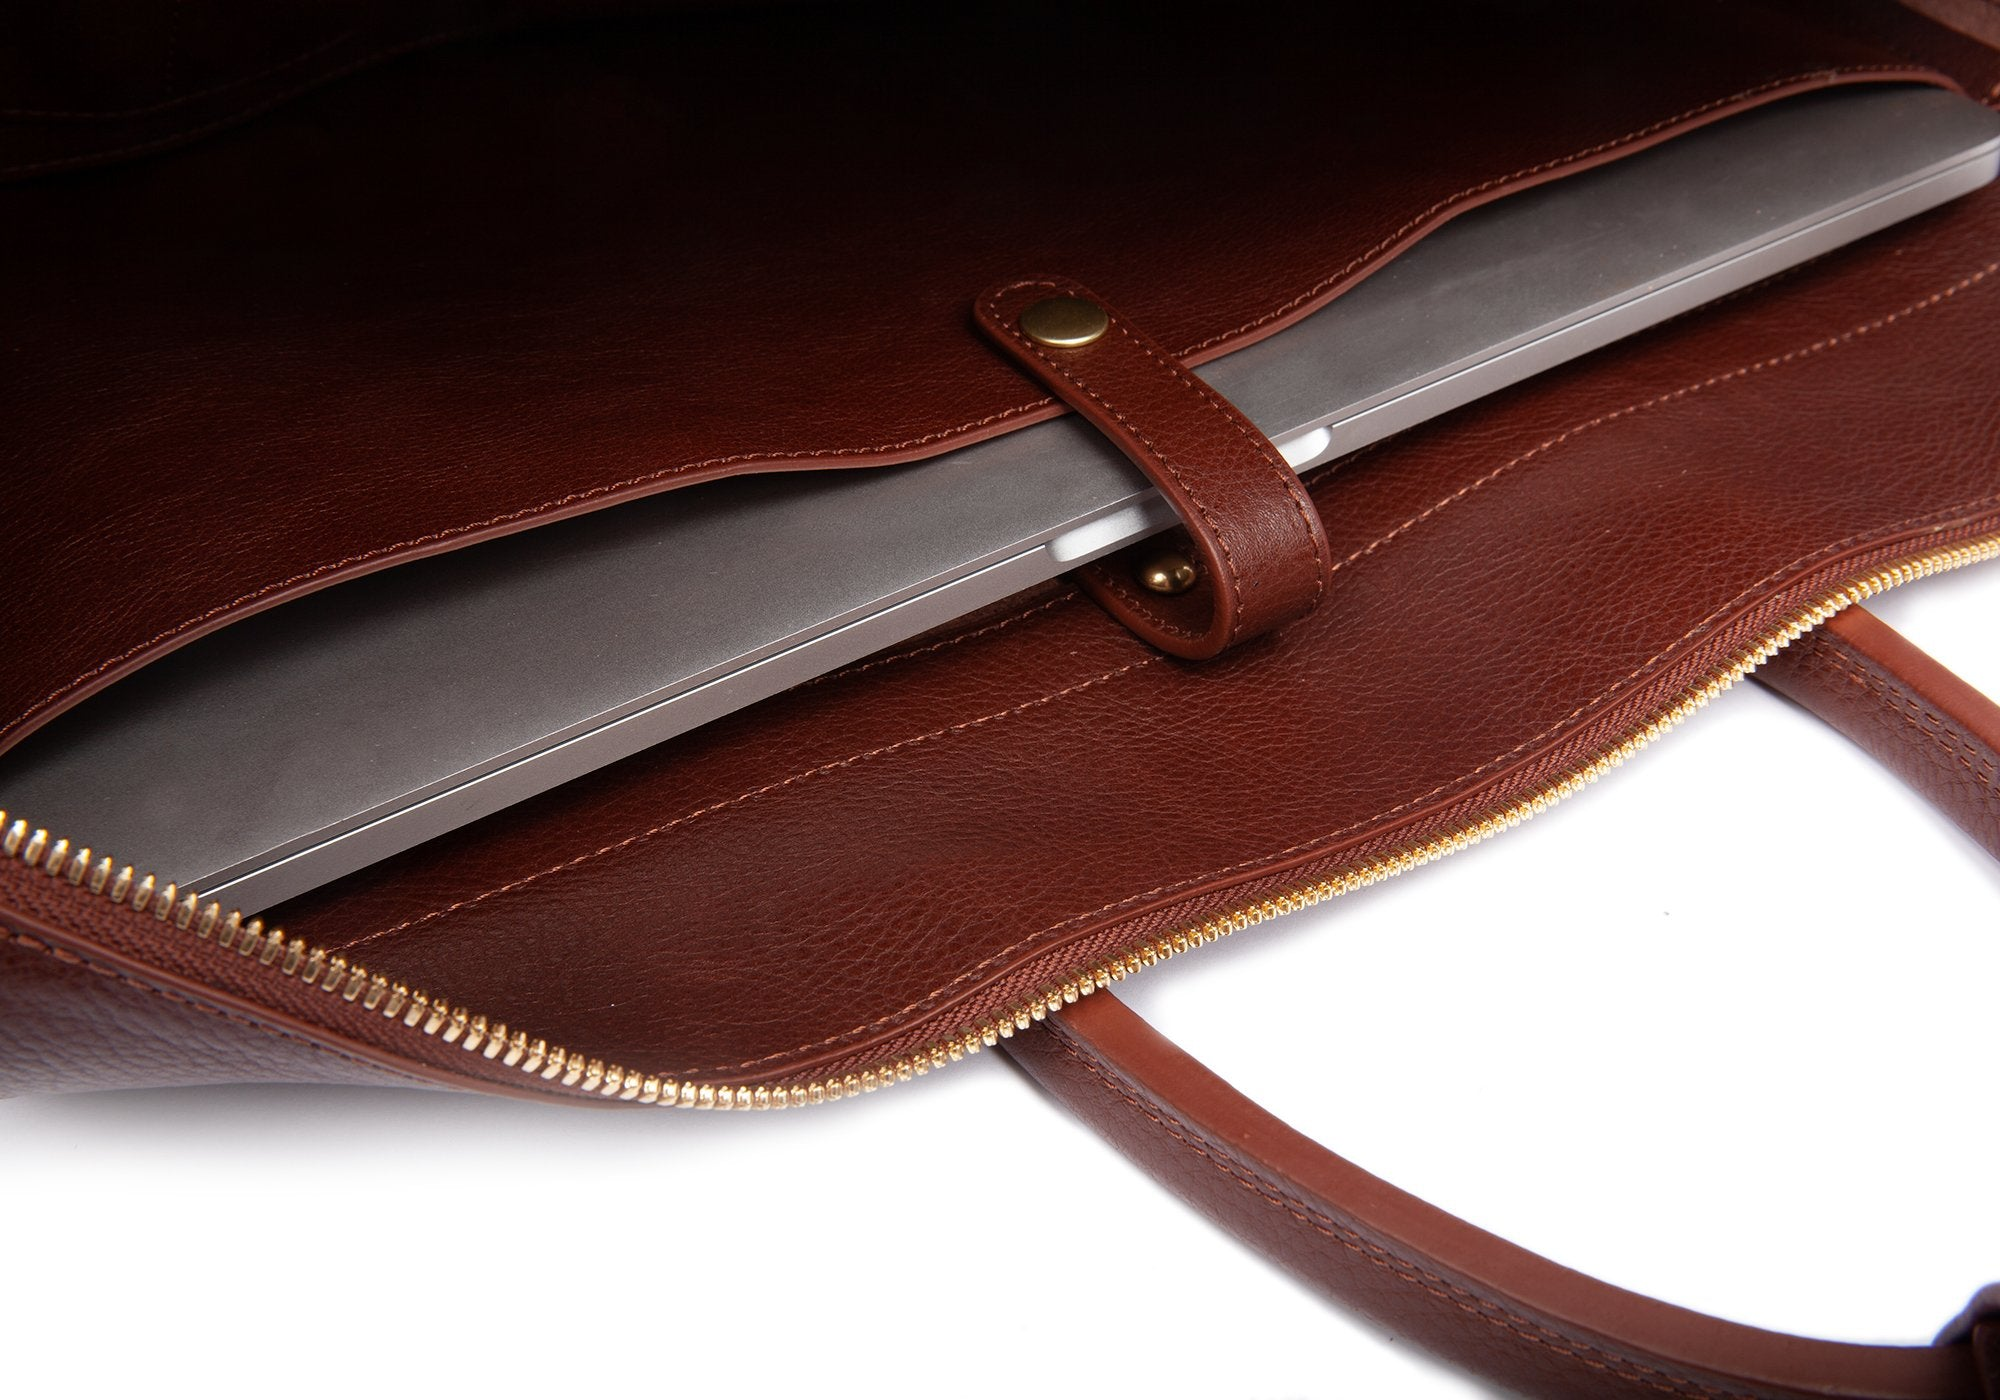 The 929 Briefcase Chestnut